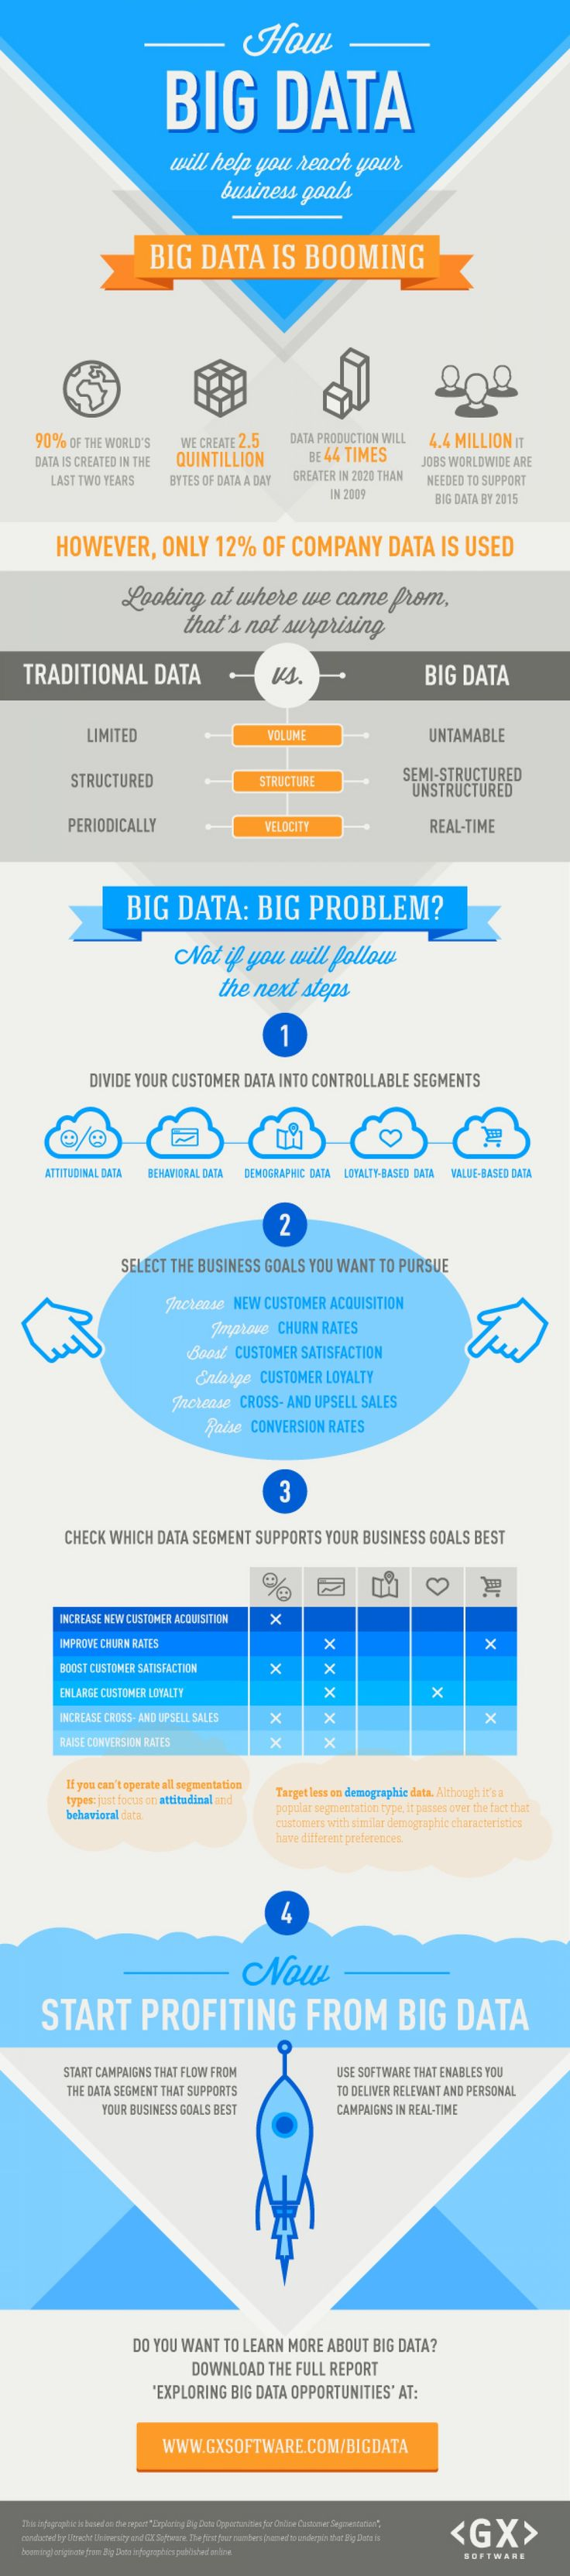 #BigData is Booming: How Big Data will help you reach your #business goals.  #Infographic